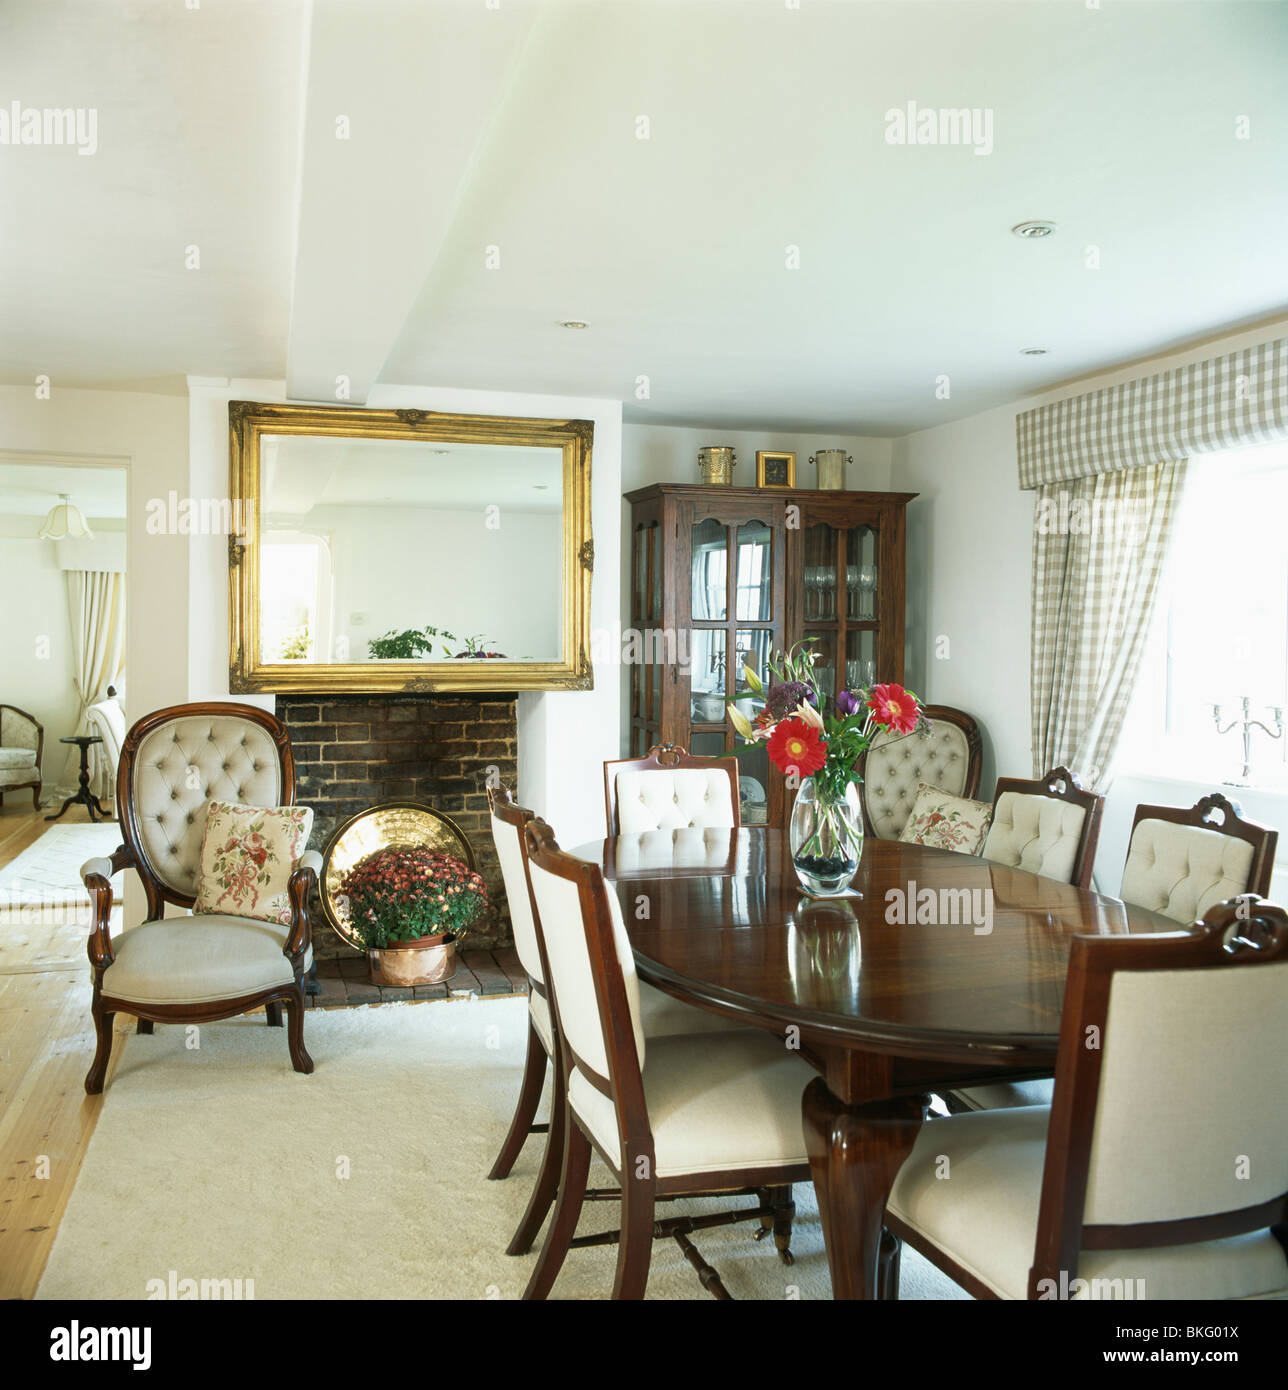 cream upholstered dining chairs rustic office and antique table in white country room with large gilt mirror above fireplace